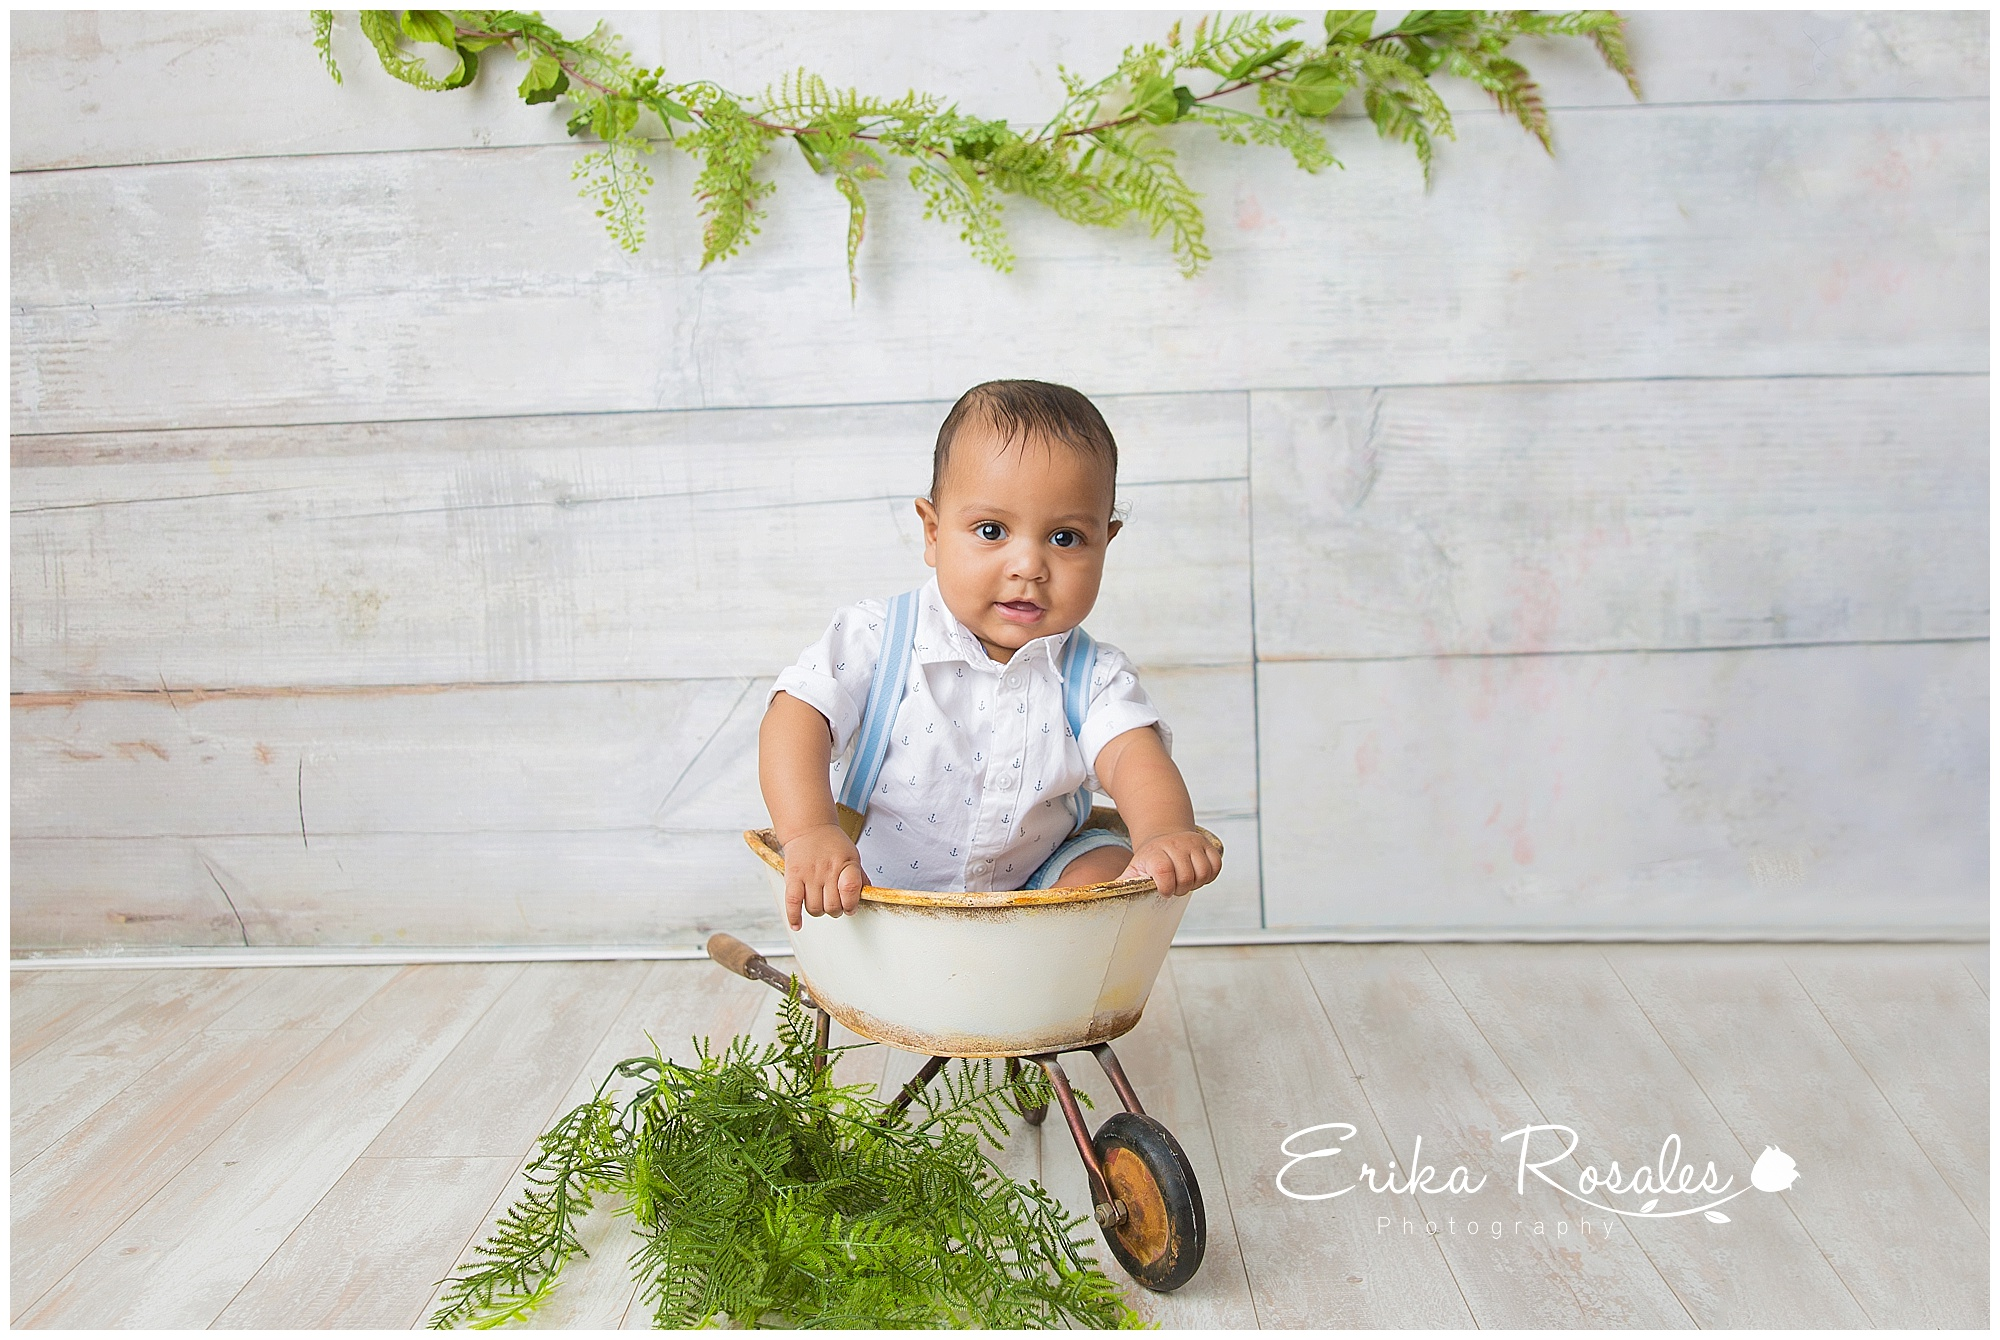 This entry was posted in milestone and tagged baby boy photo session baby boy studio photo session baby photo session baby photo shoot babyphotography